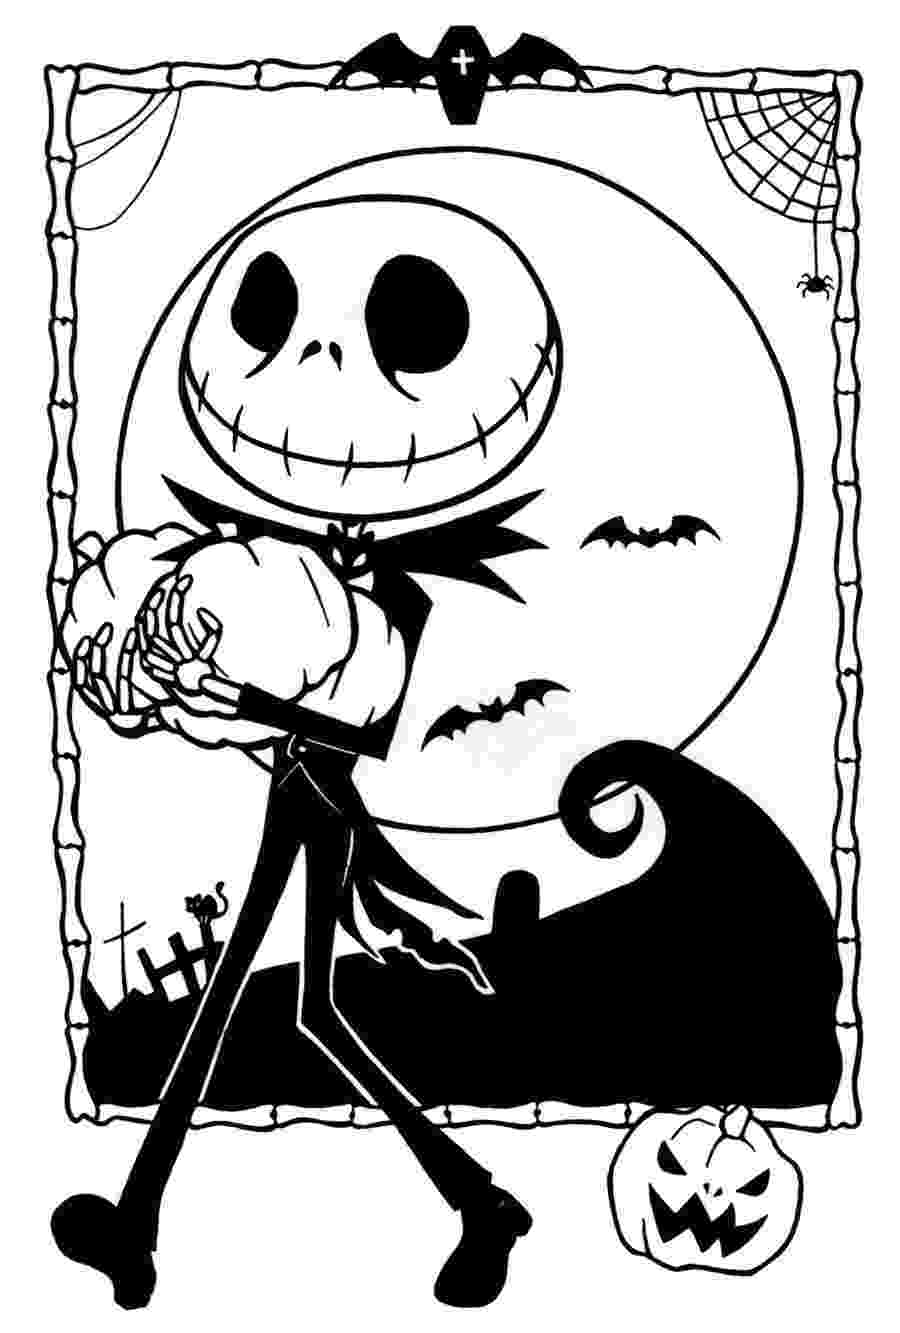 christmas coloring pages to print free free printable nightmare before christmas coloring pages pages to free print christmas coloring